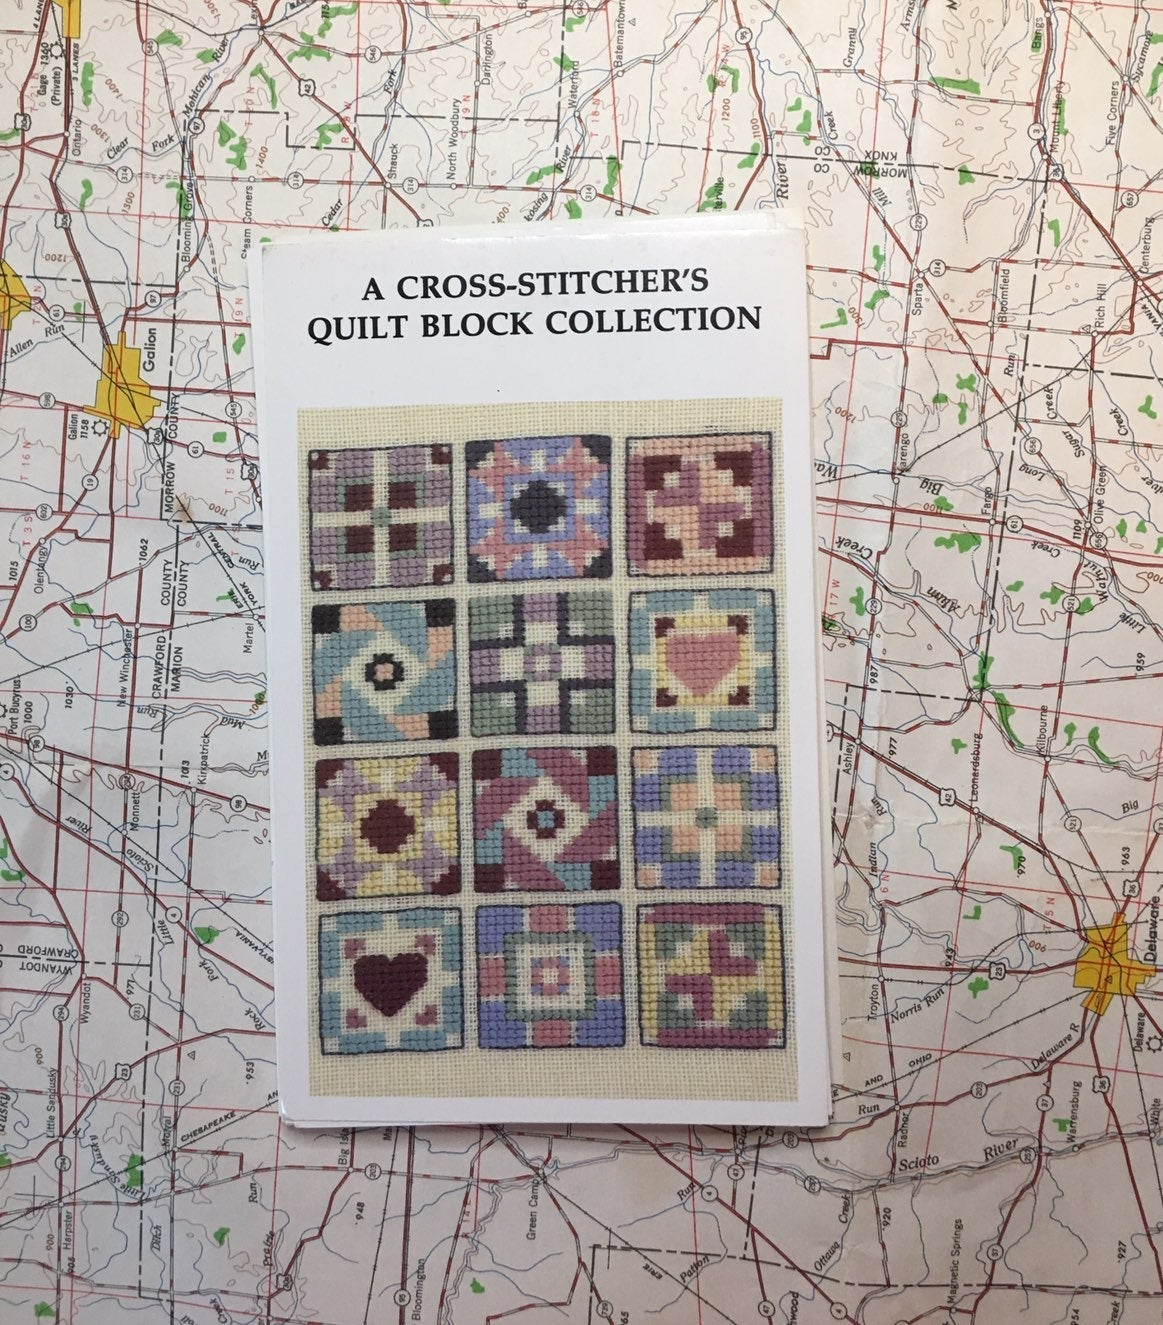 Cross-stitcher's Quilt Block Collection